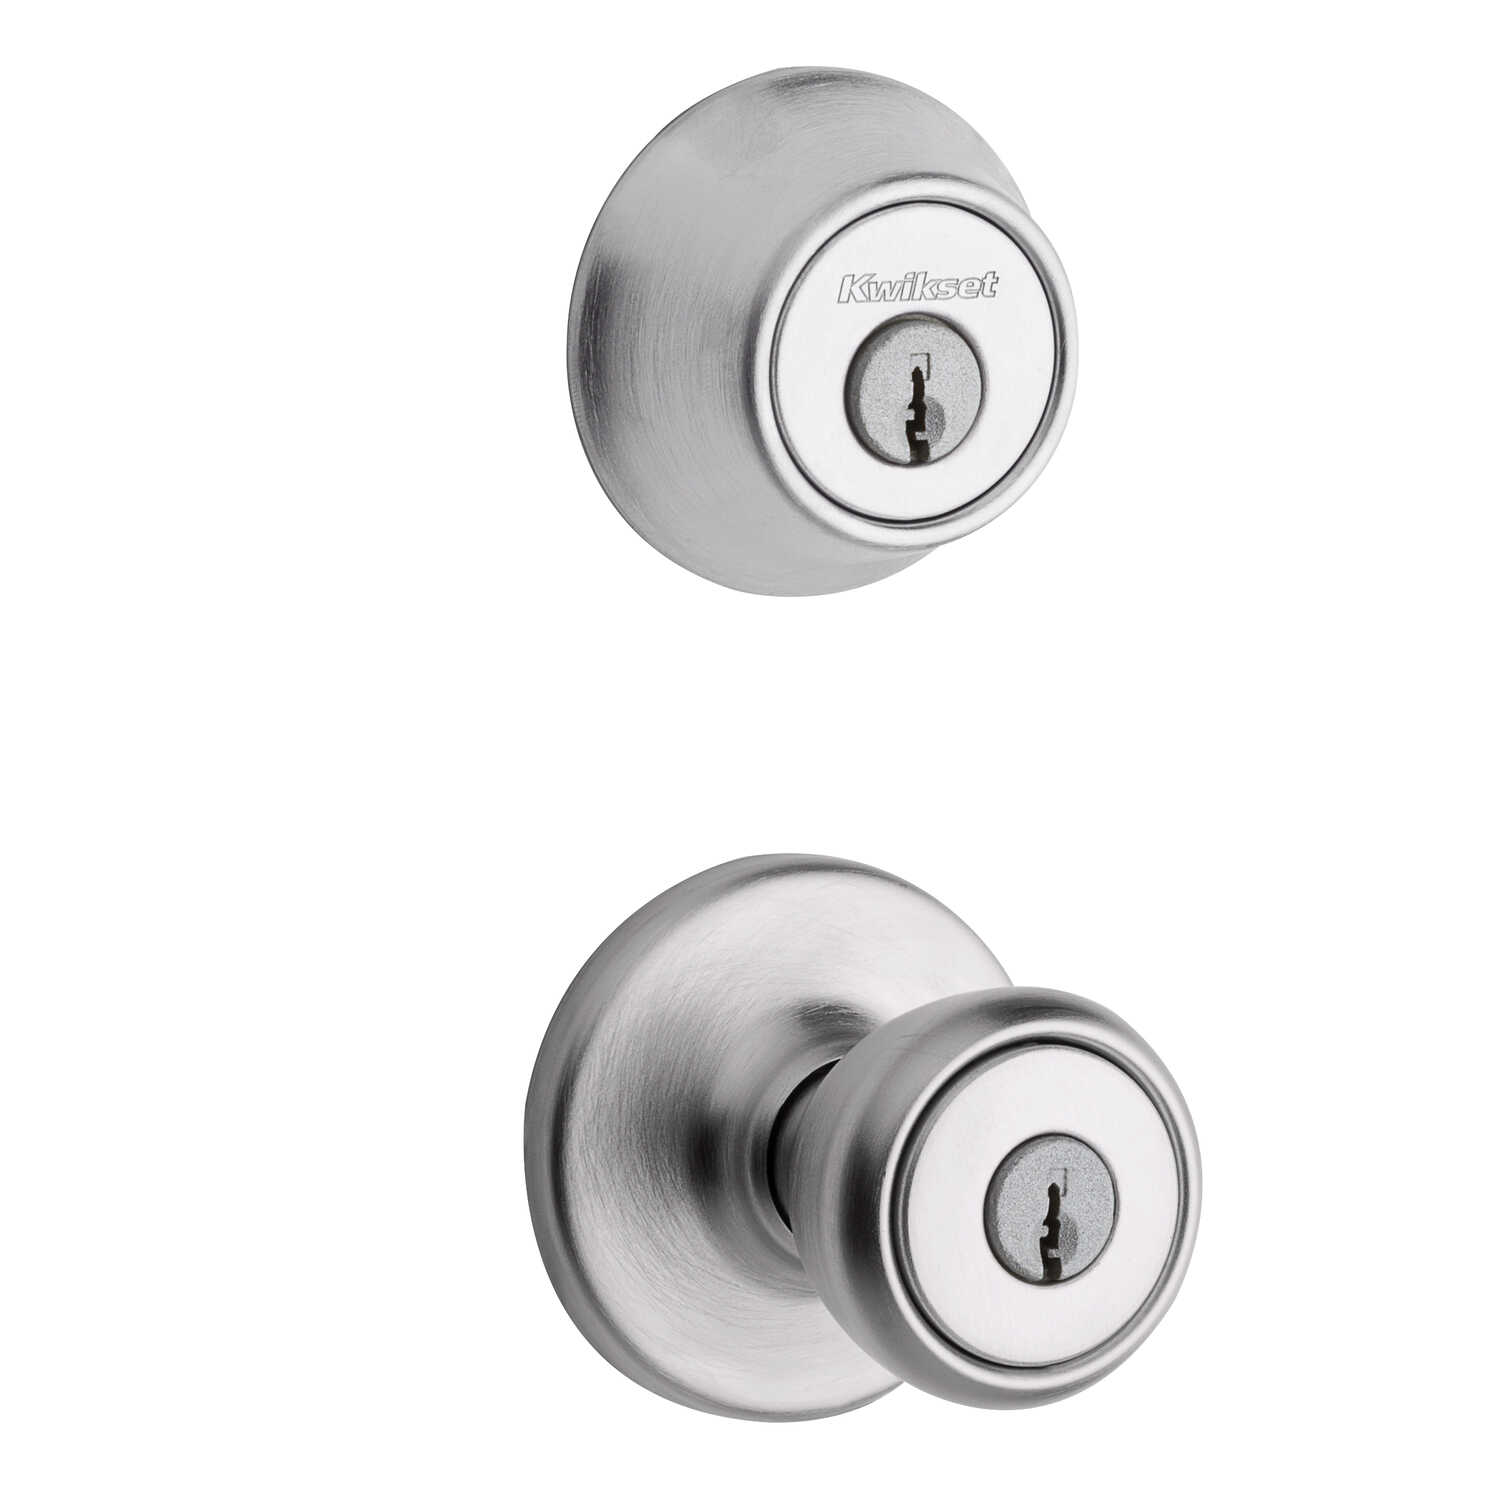 Kwikset  Tylo  Satin Chrome  Steel  Entry Lock and Single Cylinder Deadbolt  ANSI/BHMA Grade 3  1-3/